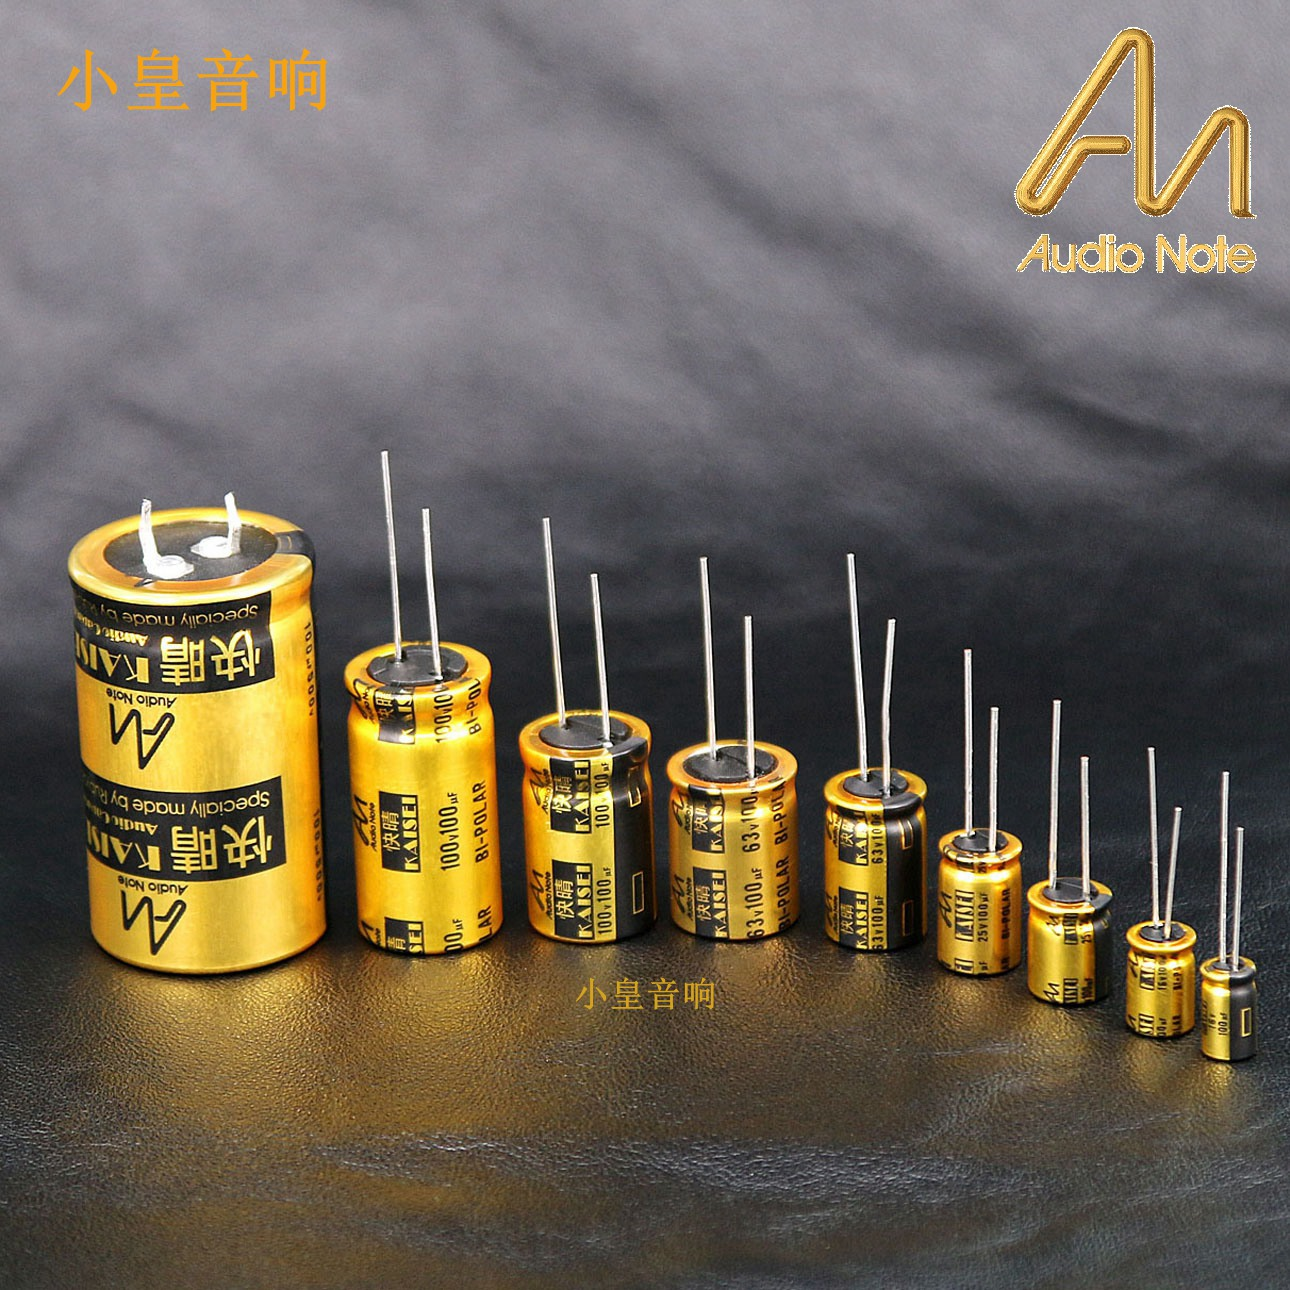 1lot/2pcs England Audio Note 0.47UF-100000UF BP BI-POLAR KAISEI Audio Quality High Voltage Electrolytic Capacitors Free Shipping